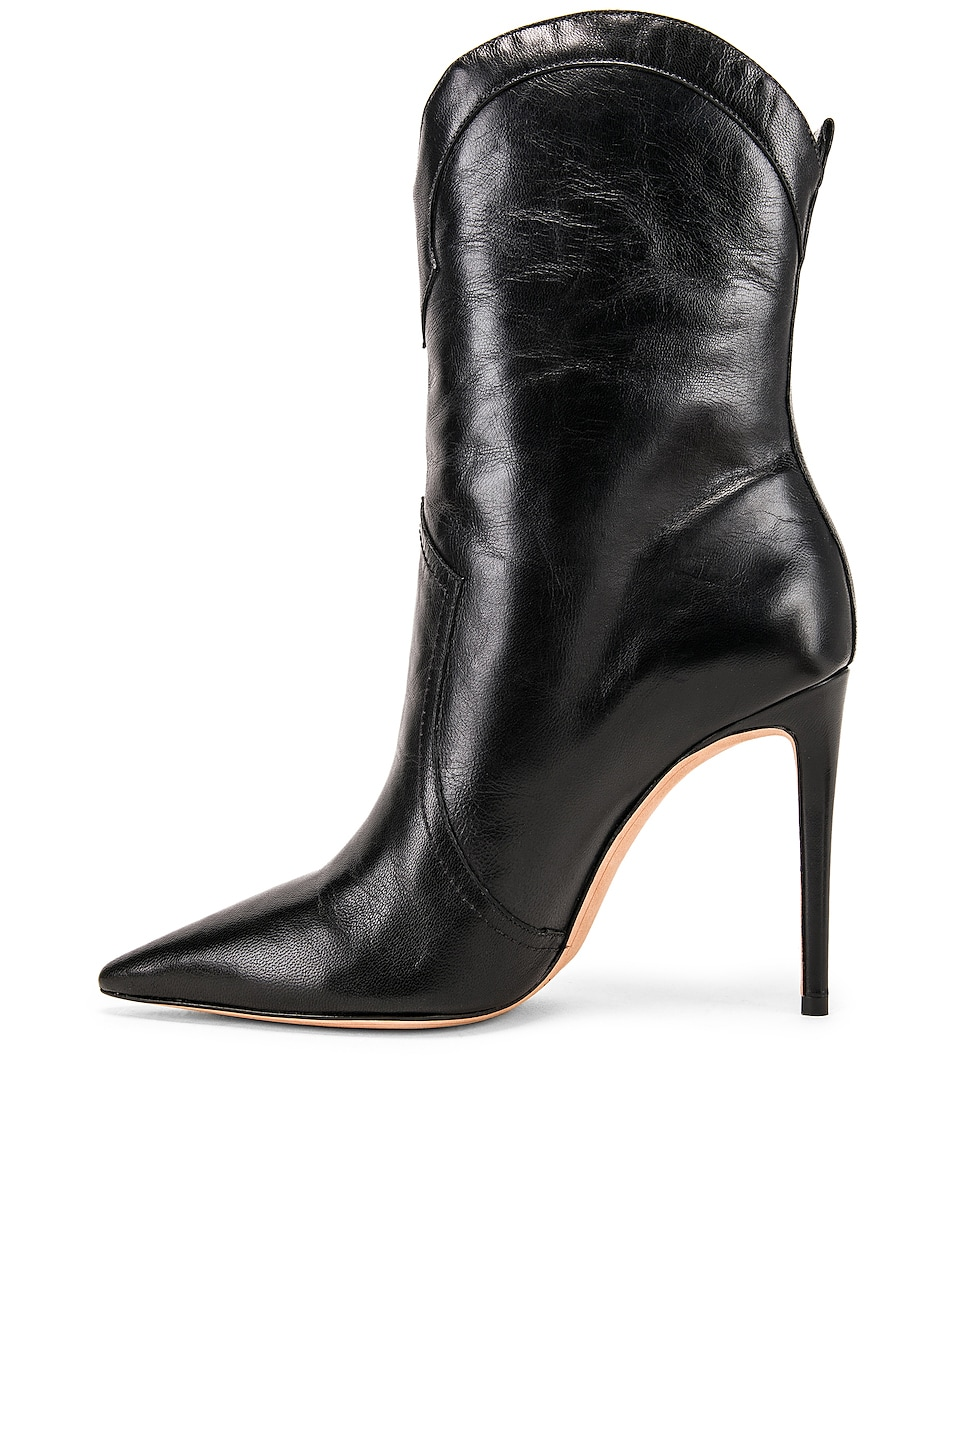 Image 5 of Alexandre Birman Esther Boots in Black